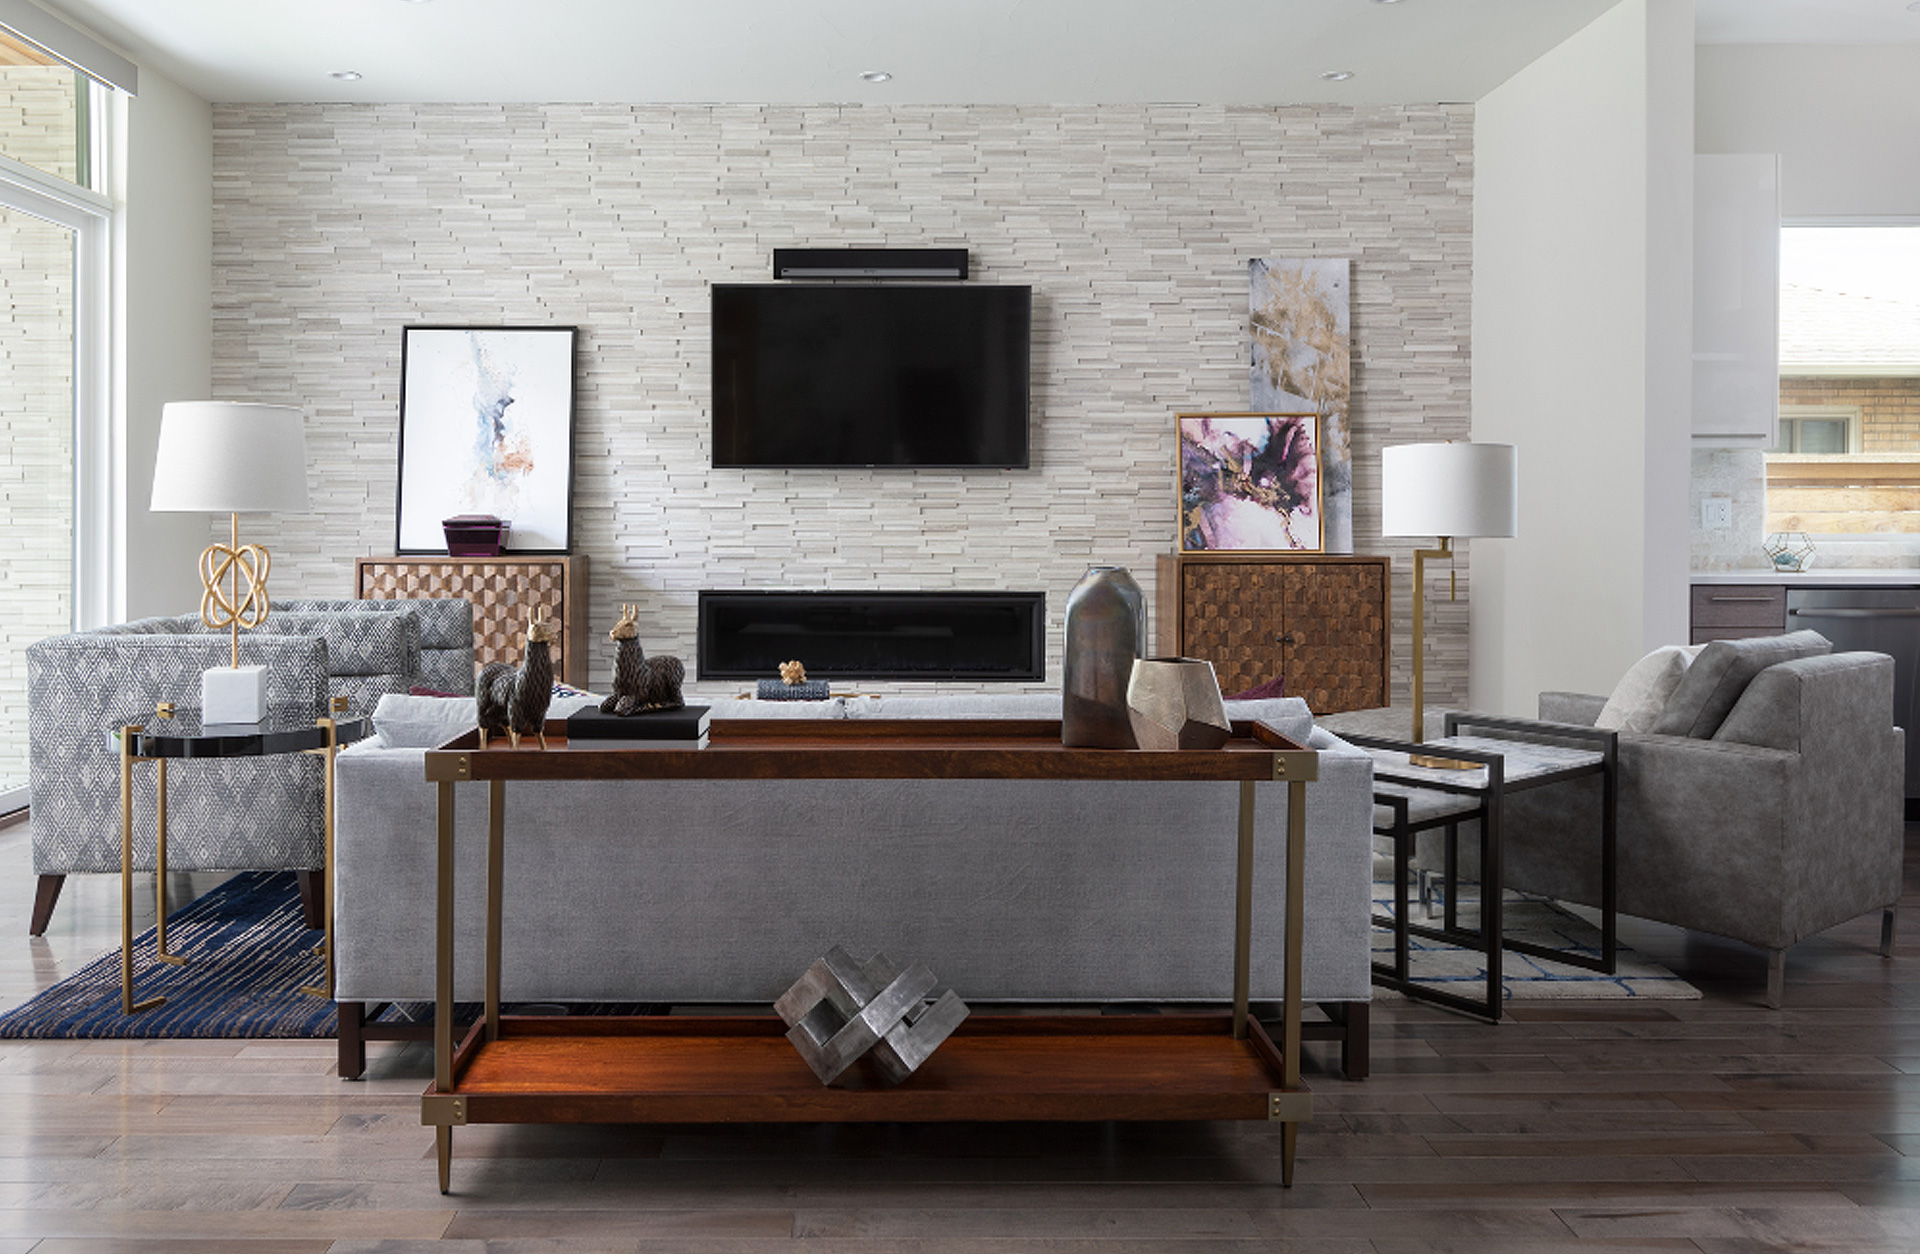 Great Remodeling Choices 101: How to Weather Living in a Construction Zone